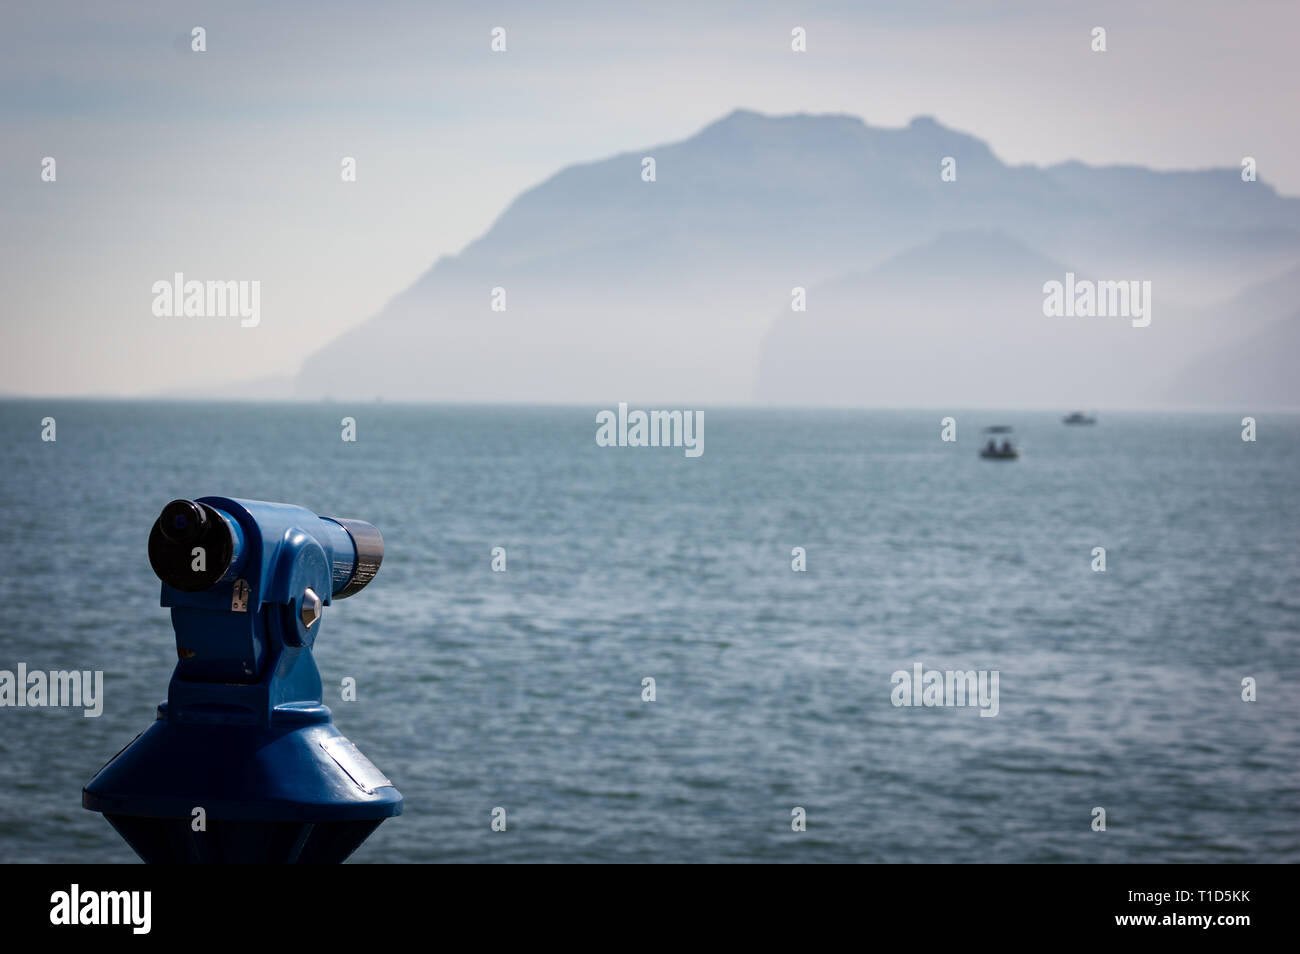 Background of a blue panoramic touristic telescope overlooking the Mediterranean sea with a boat. - Stock Image